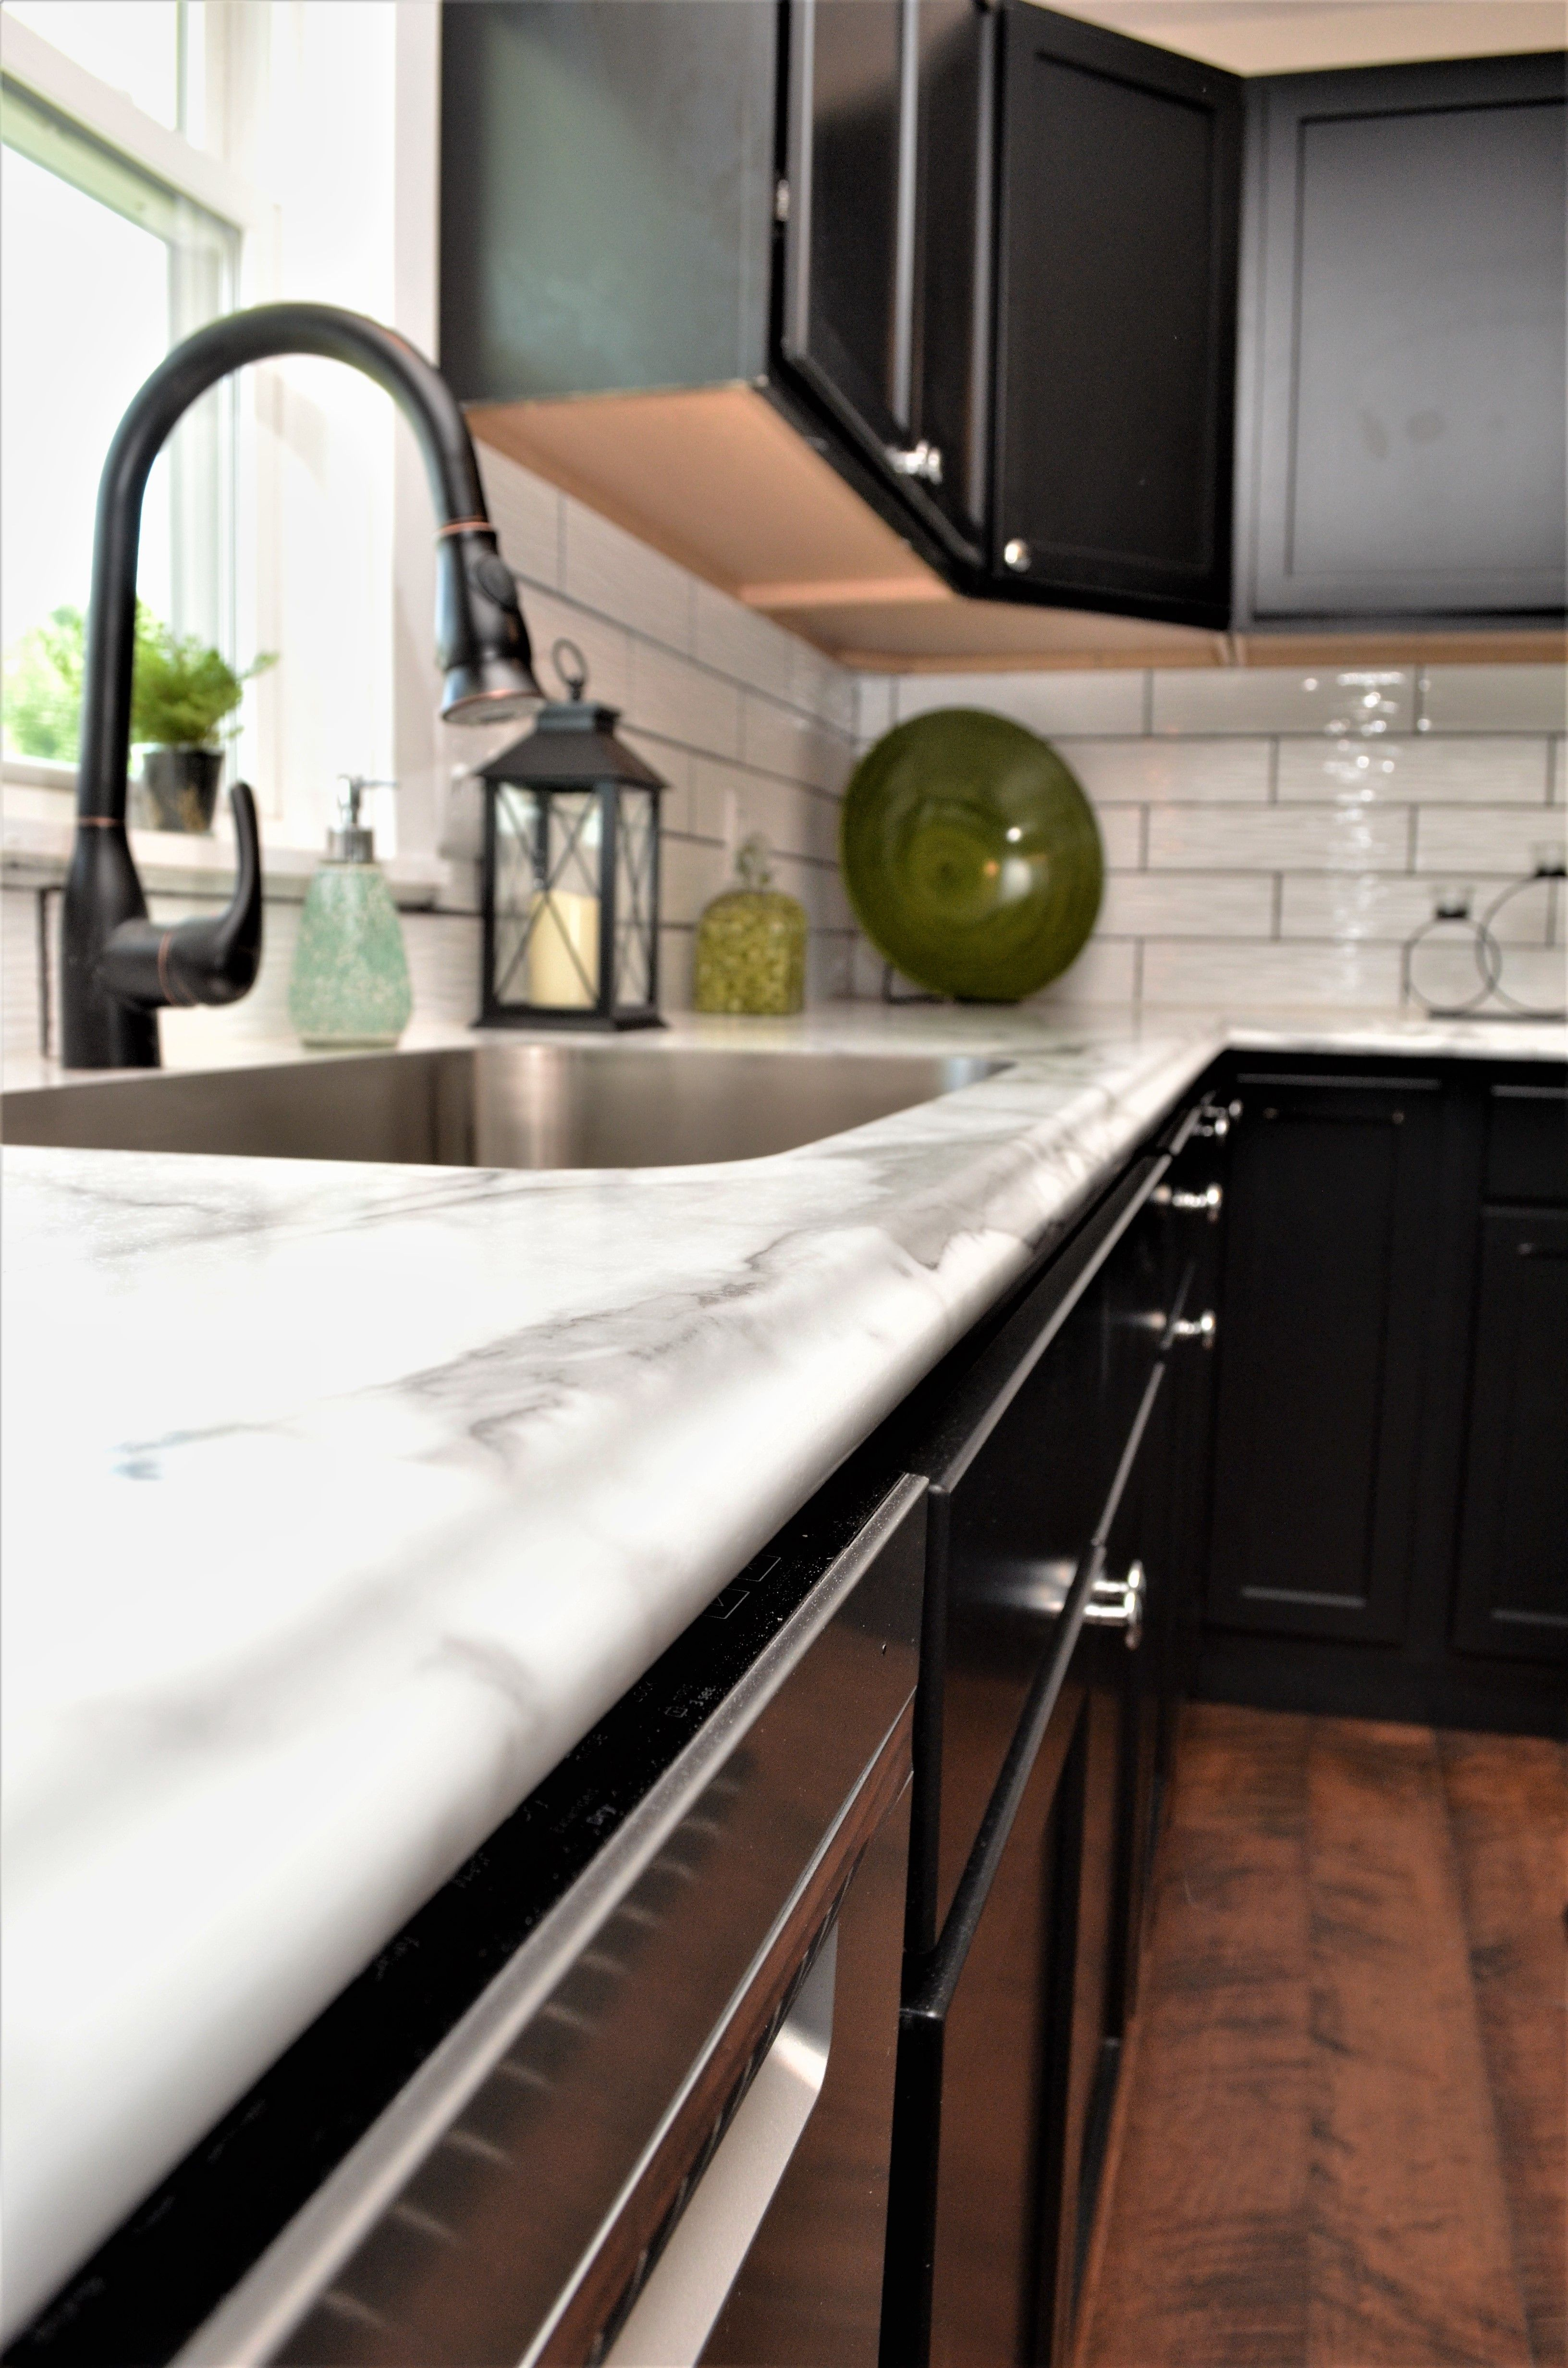 Remarkable Laminate Countertop Amore Edge Style Calacatta Marble Beutiful Home Inspiration Aditmahrainfo